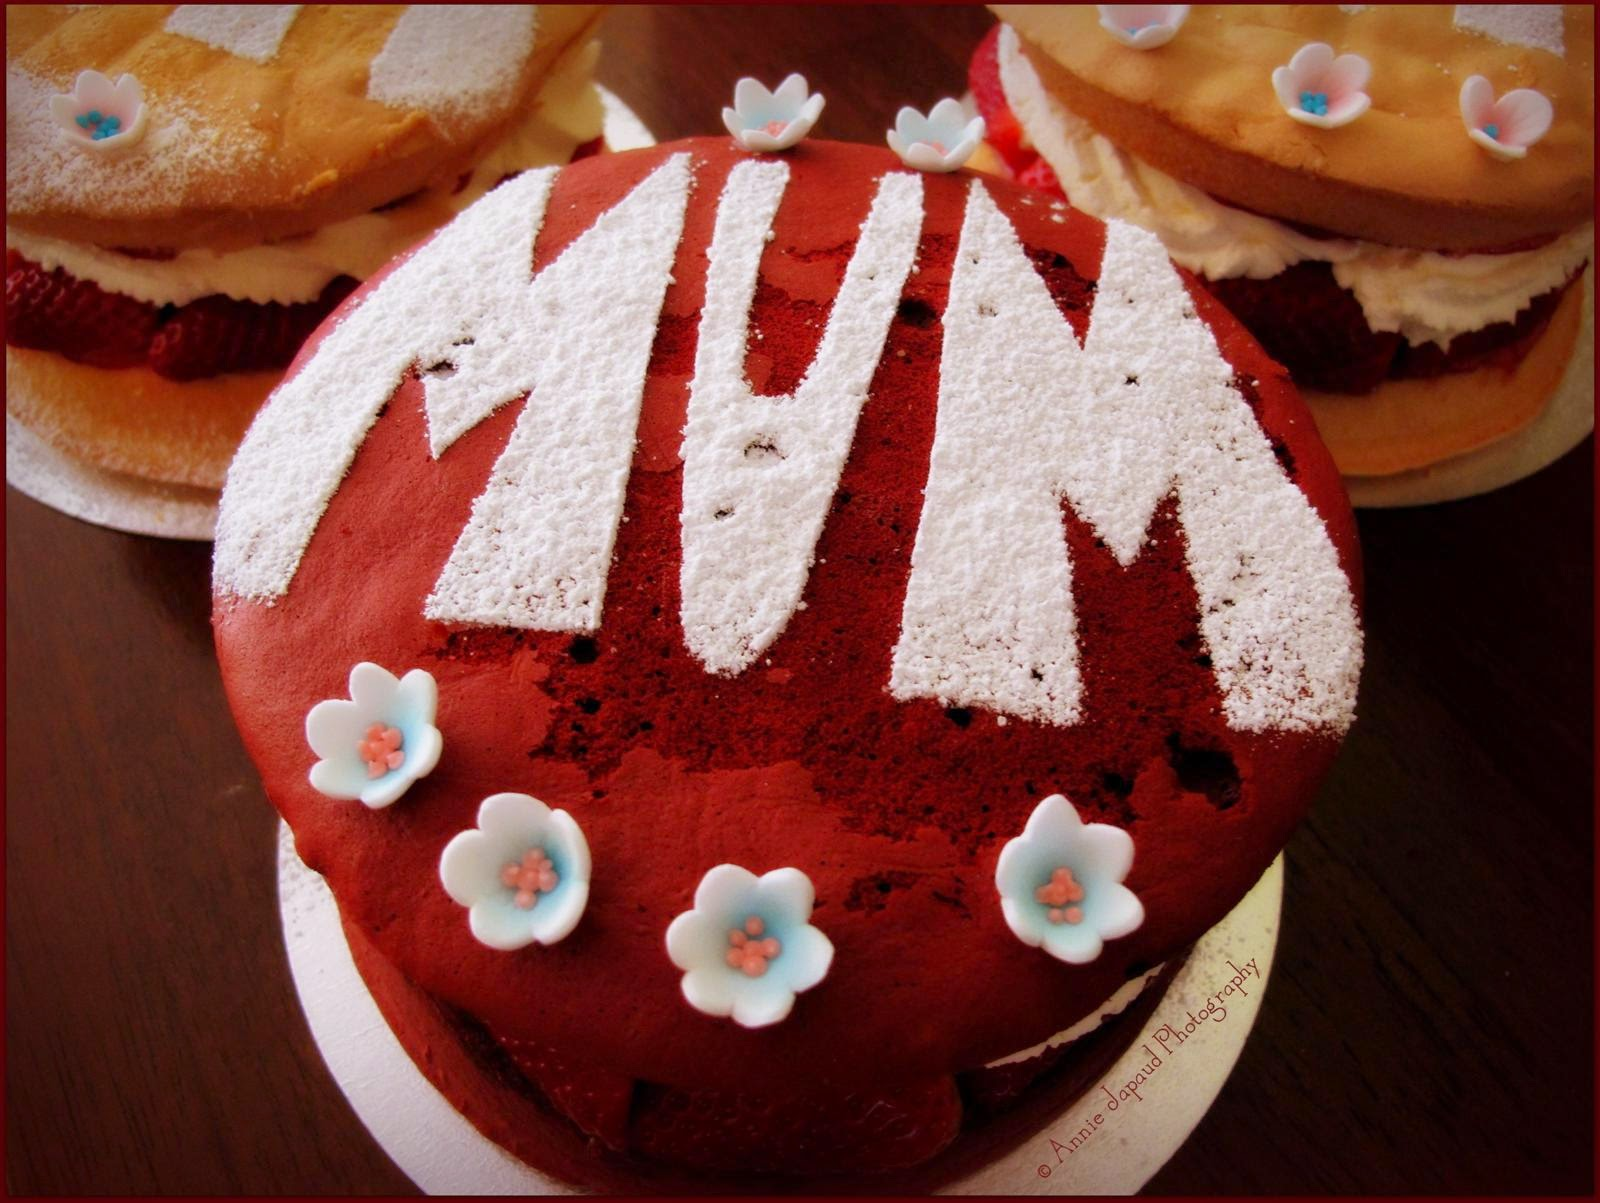 Victoria sponge made from red velvet, decorated with flowers